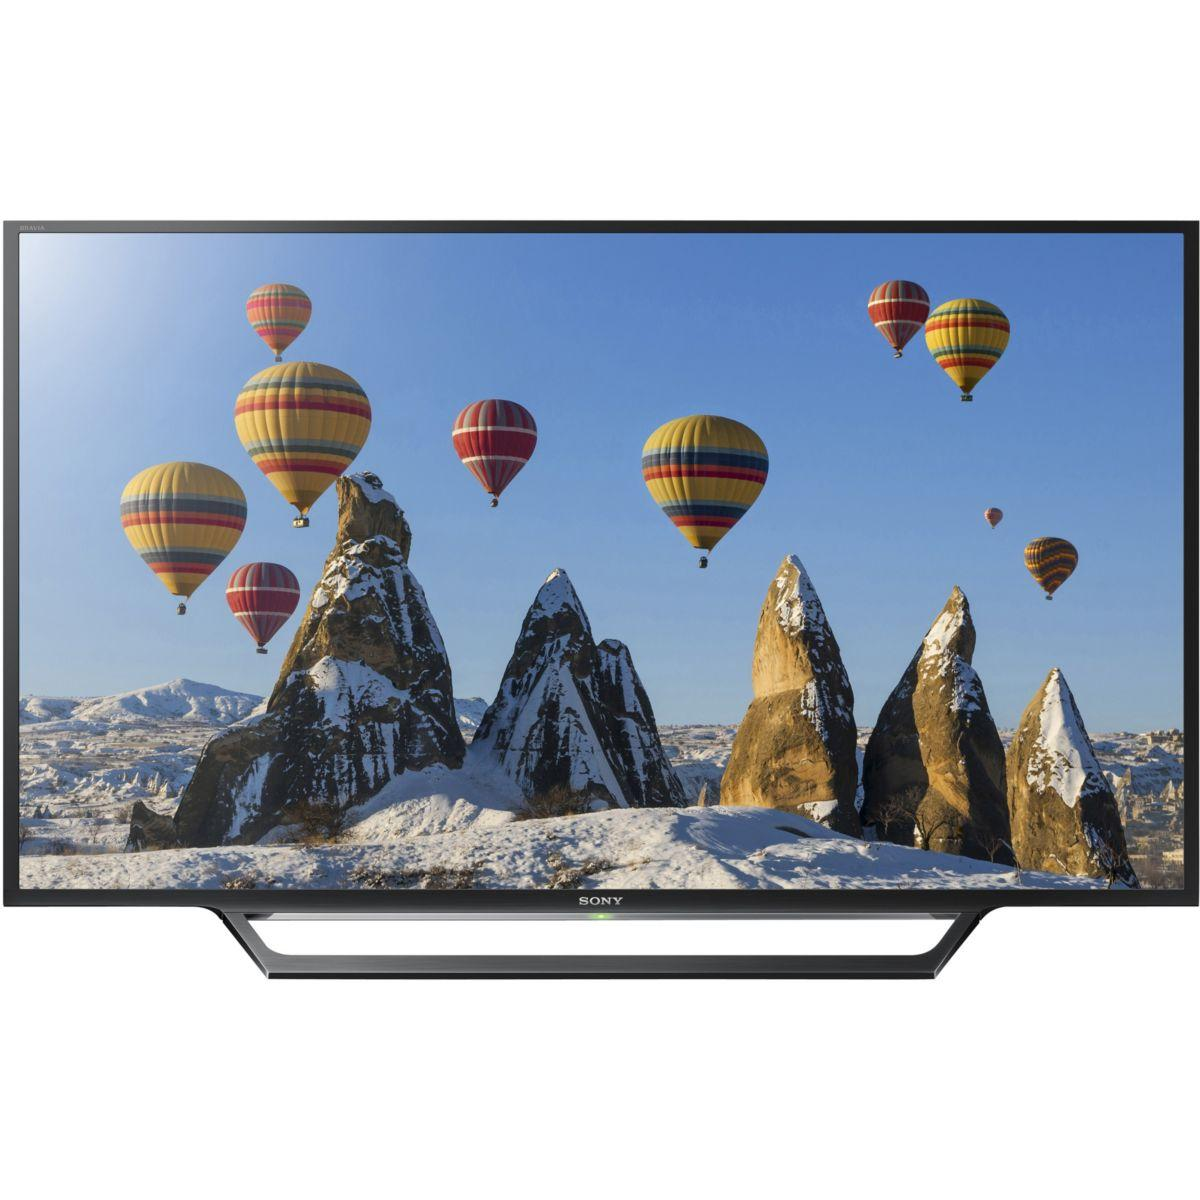 TV SONY KDL40WD650 200Hz MXR SMART TV